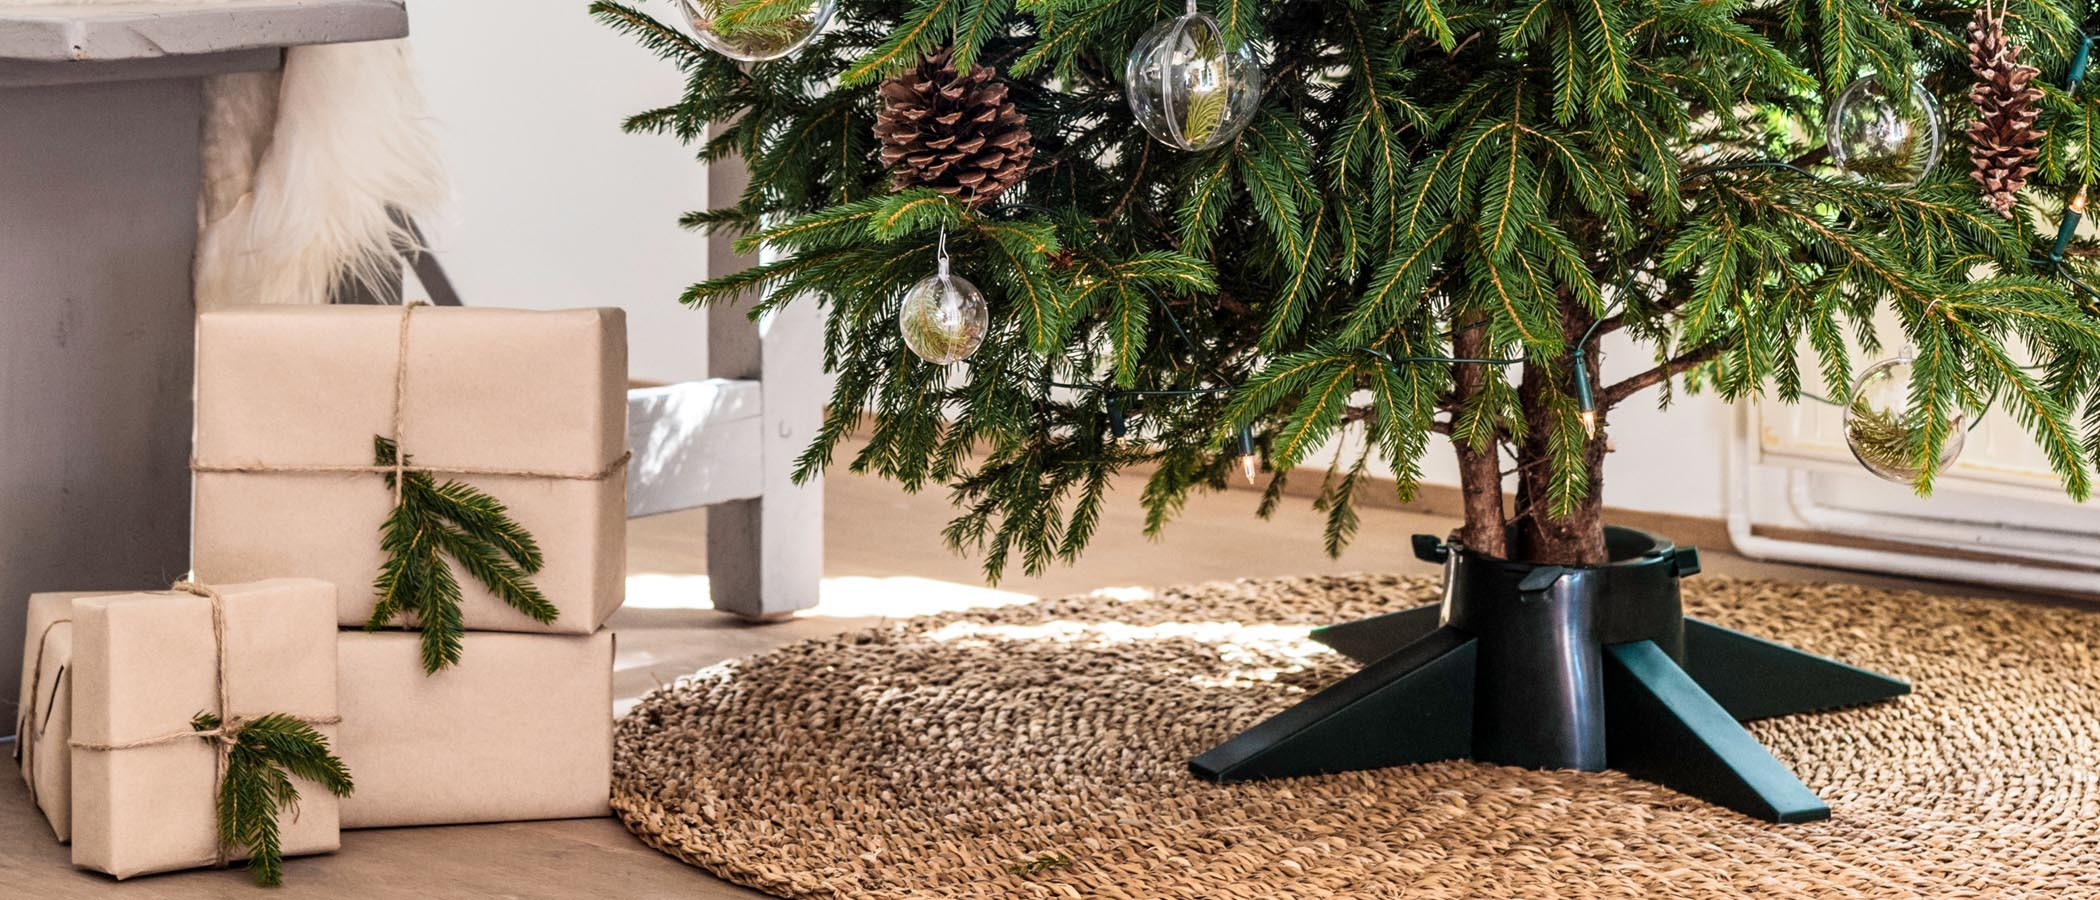 Essential Christmas Decorations.Tree Nest Decorations Essential Christmas